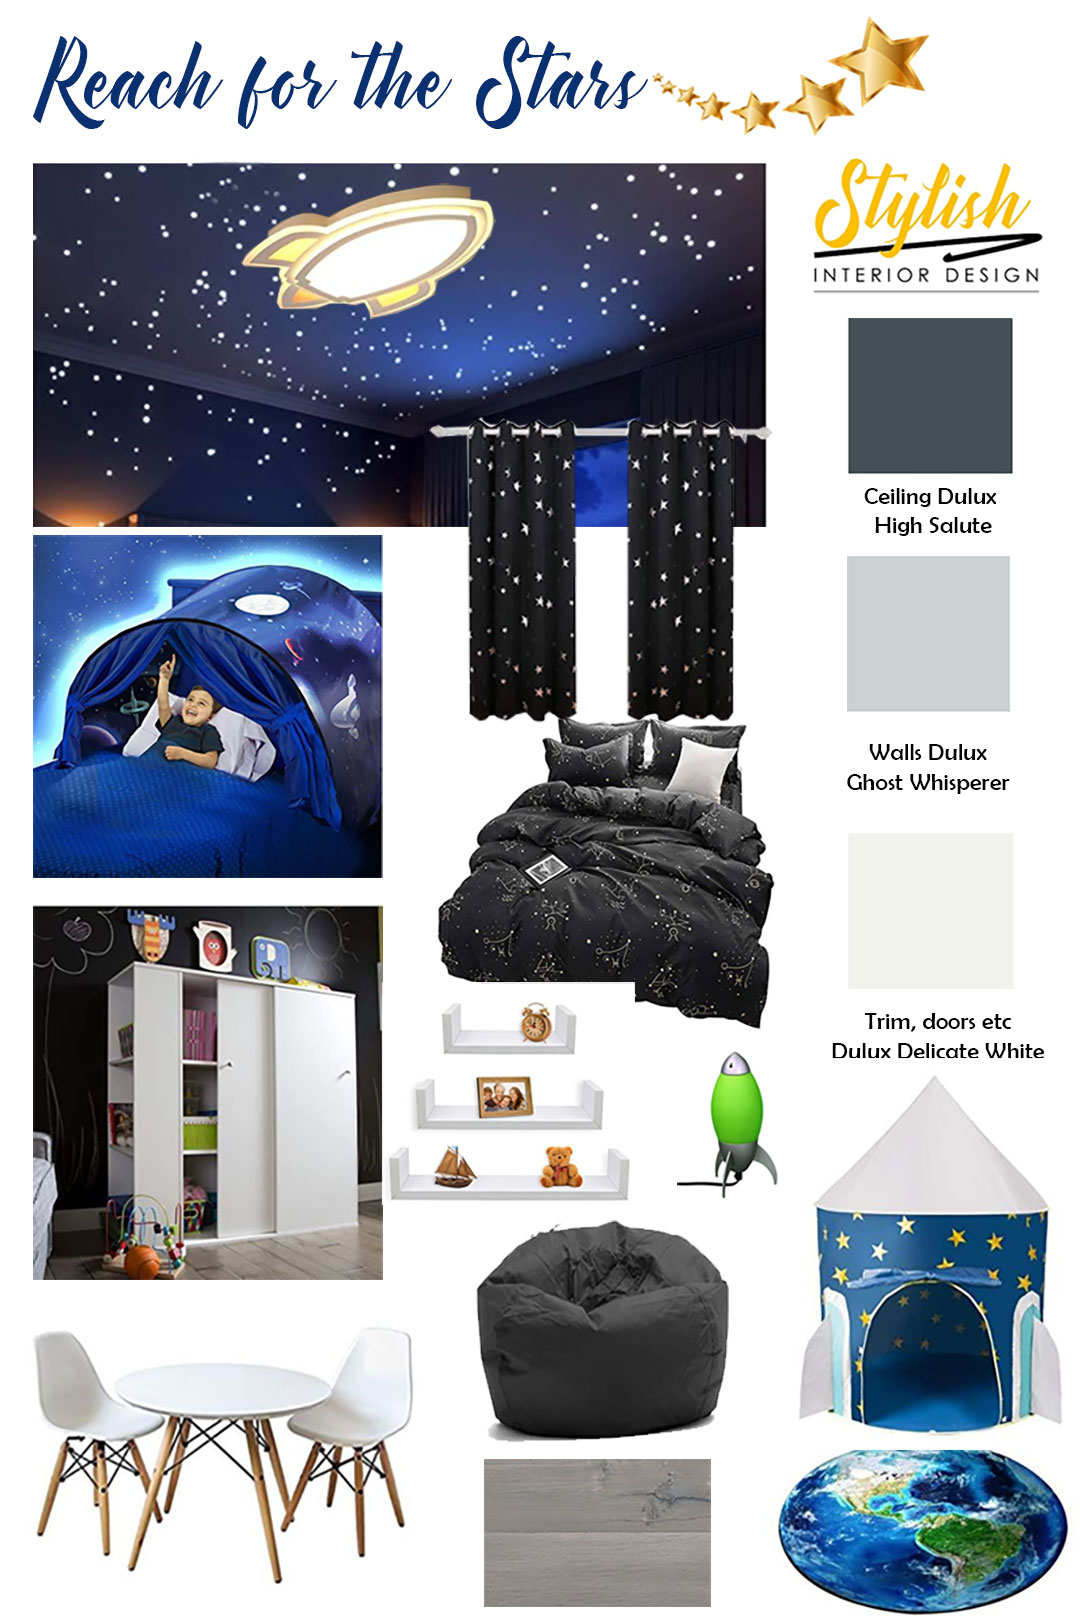 Mood board for reach for the stars room design